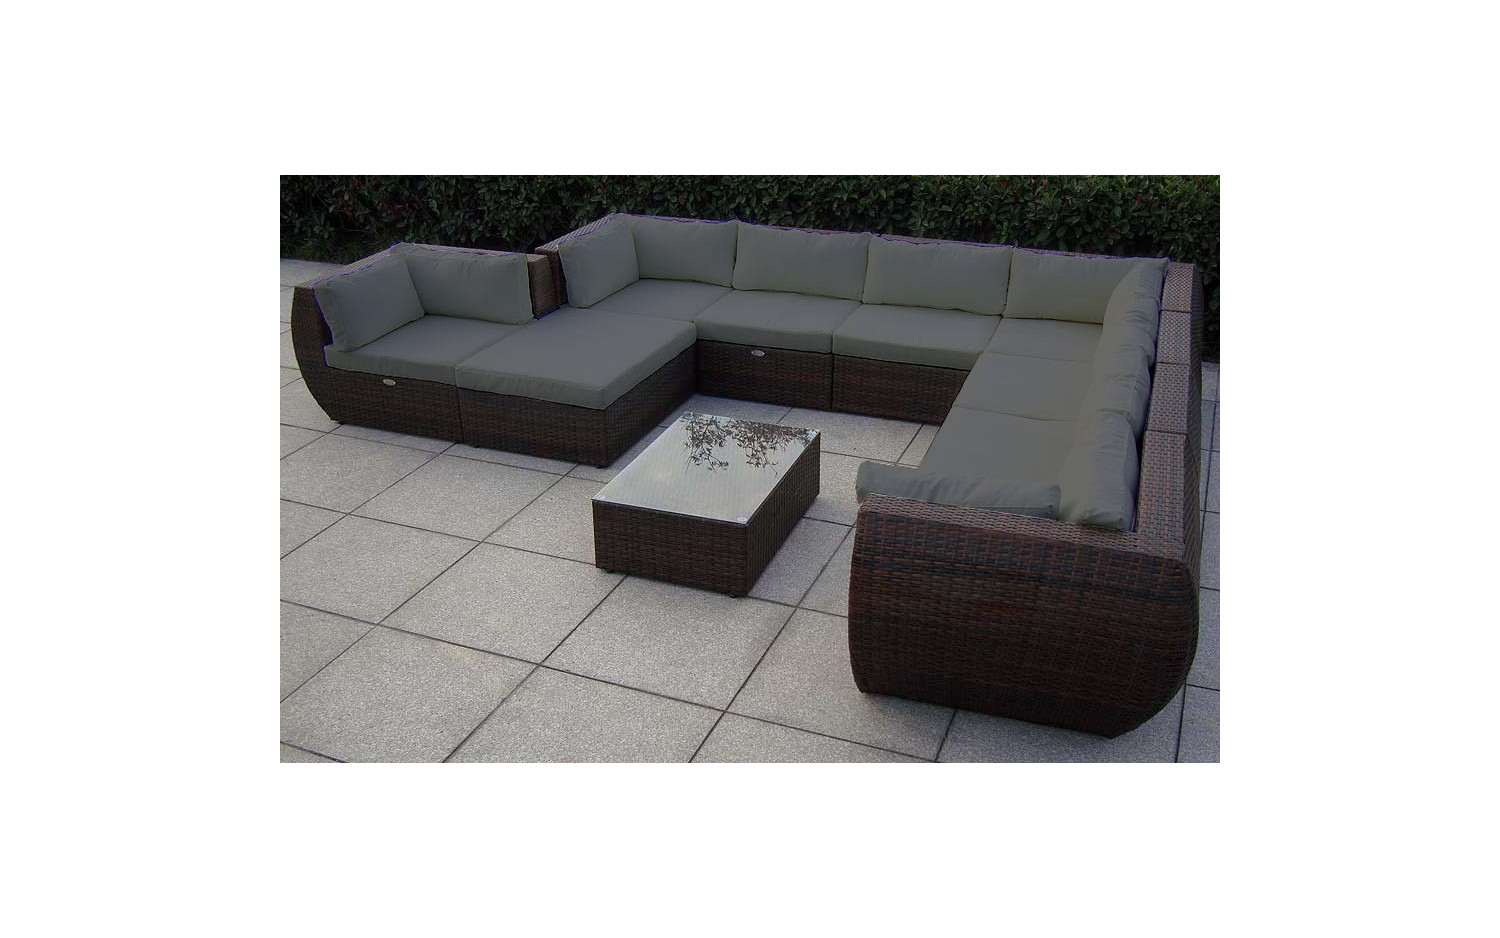 Uberlegen Best Baidani Rattan Garten Lounge Garnitur Extreme With Lounge Garnitur  With Lounge Garnitur Polyrattan